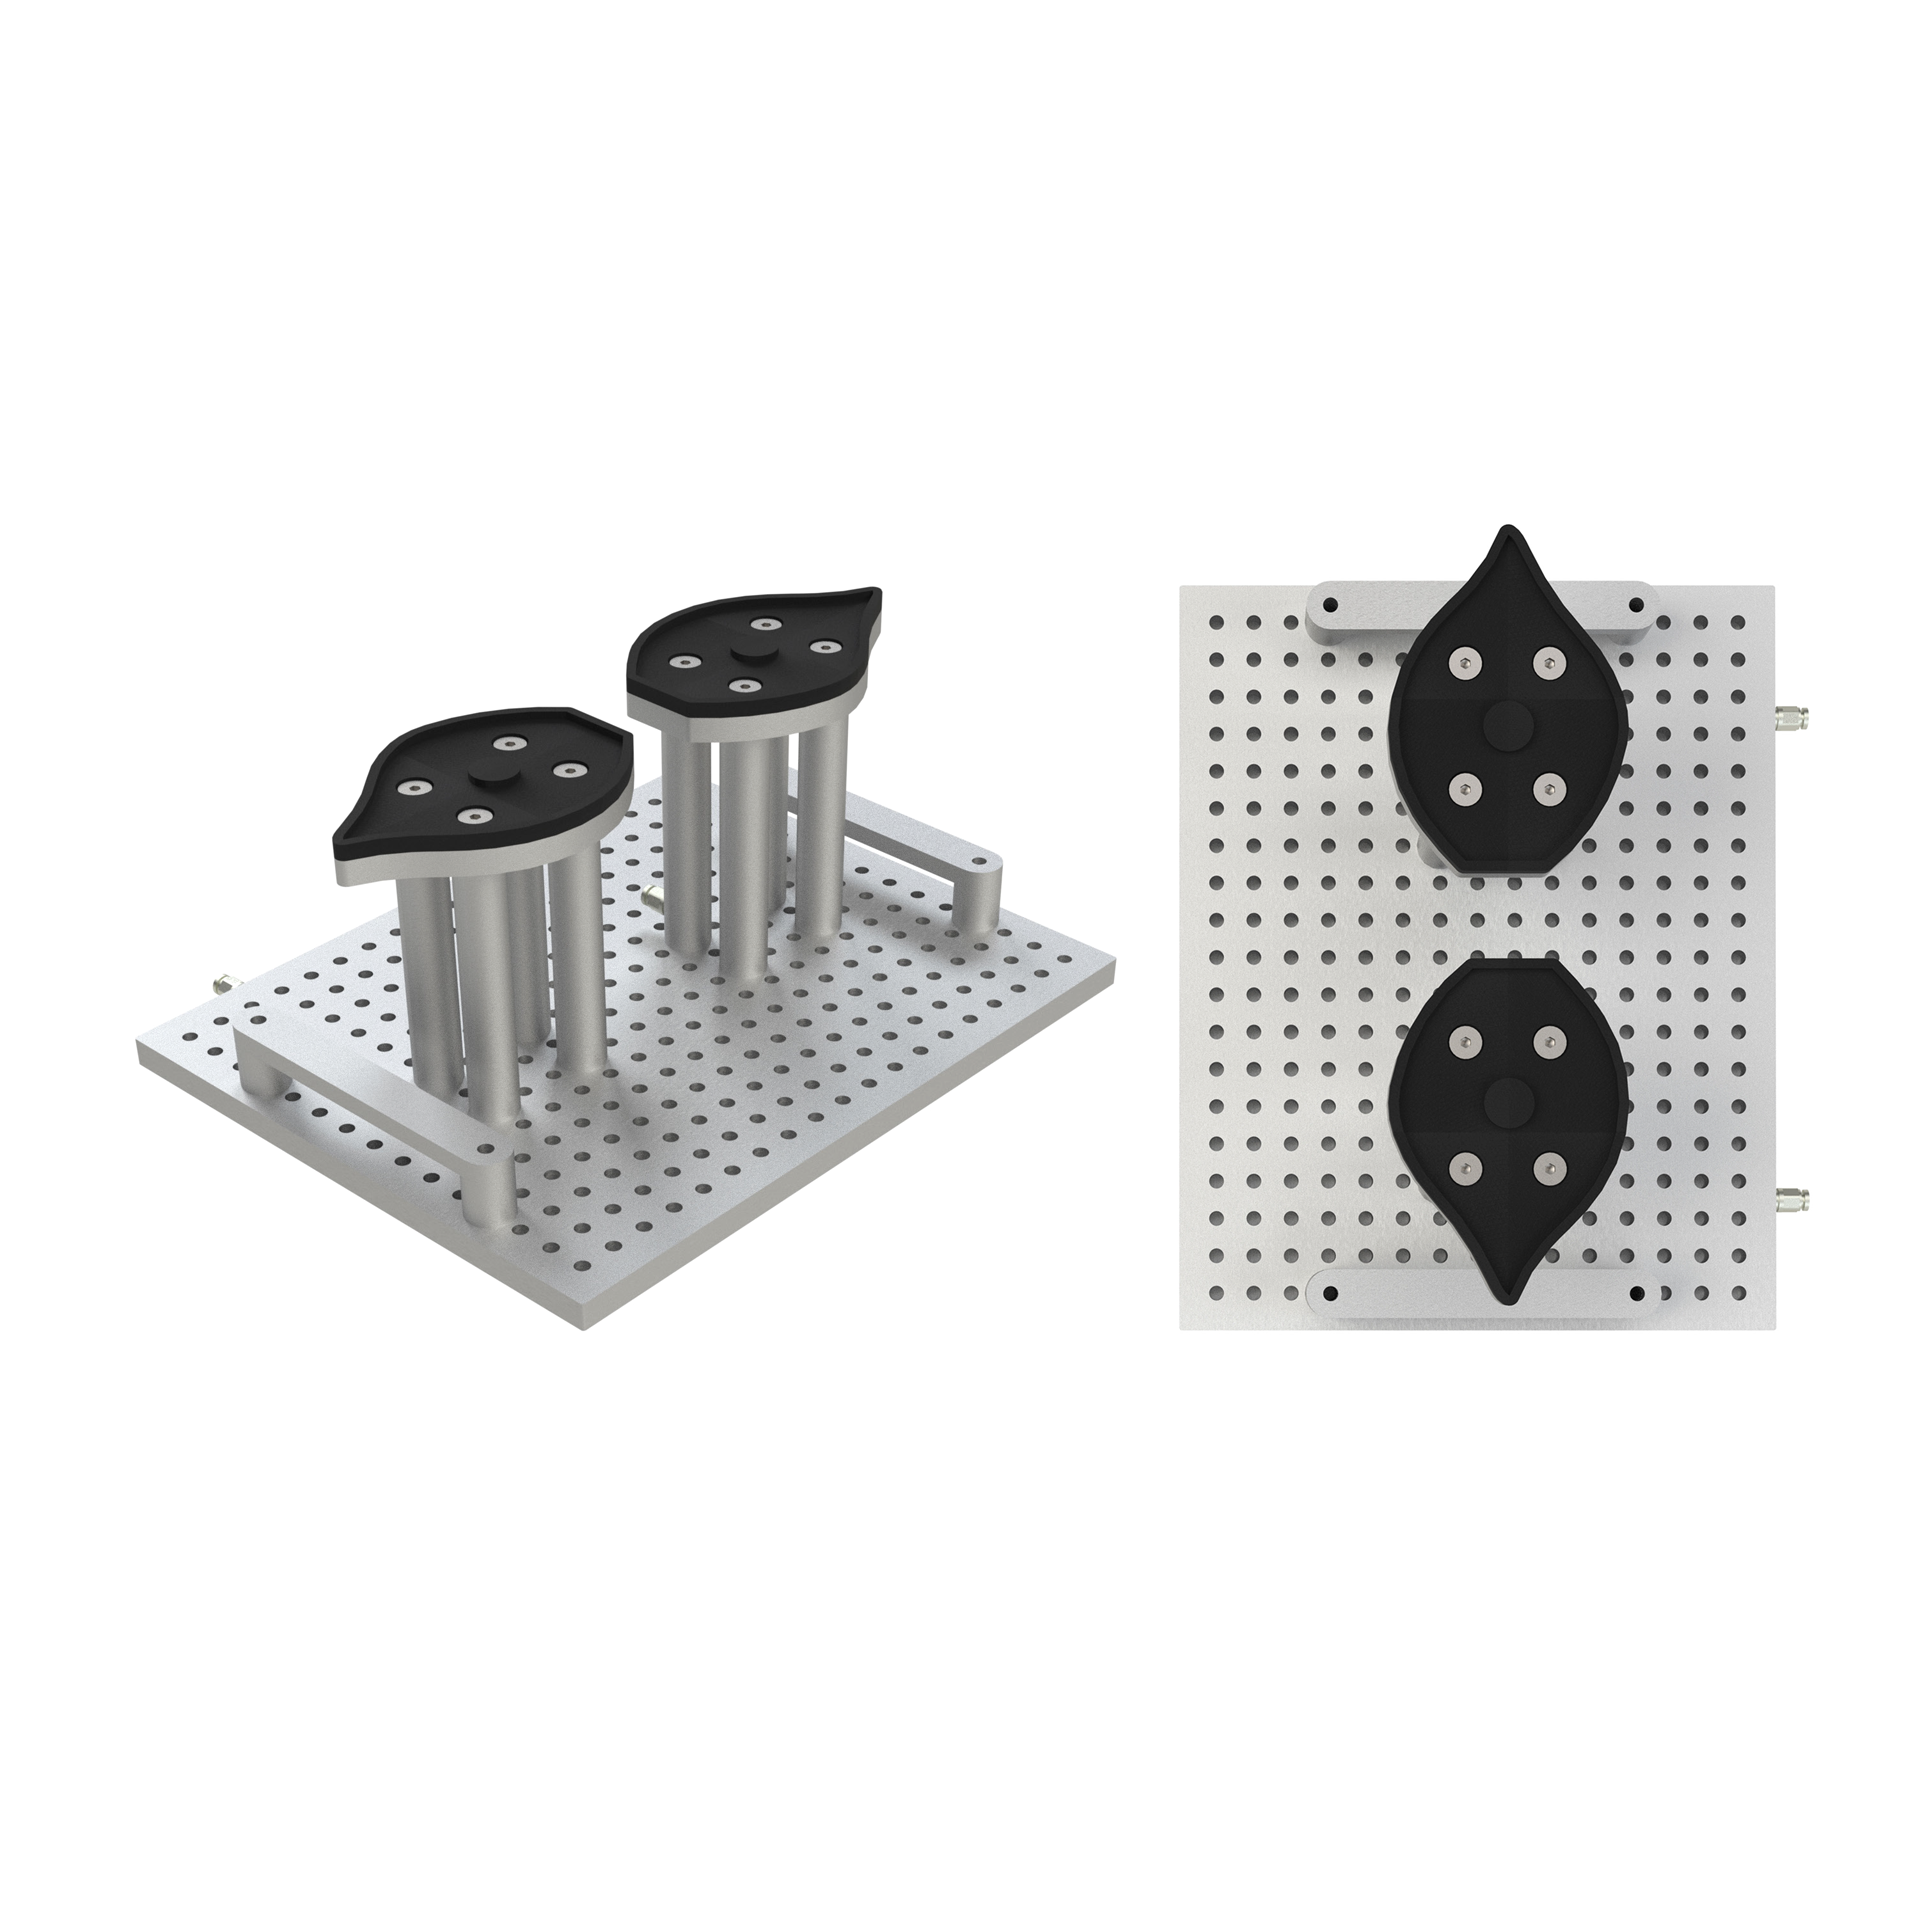 Fixture for making beveled glass trophies